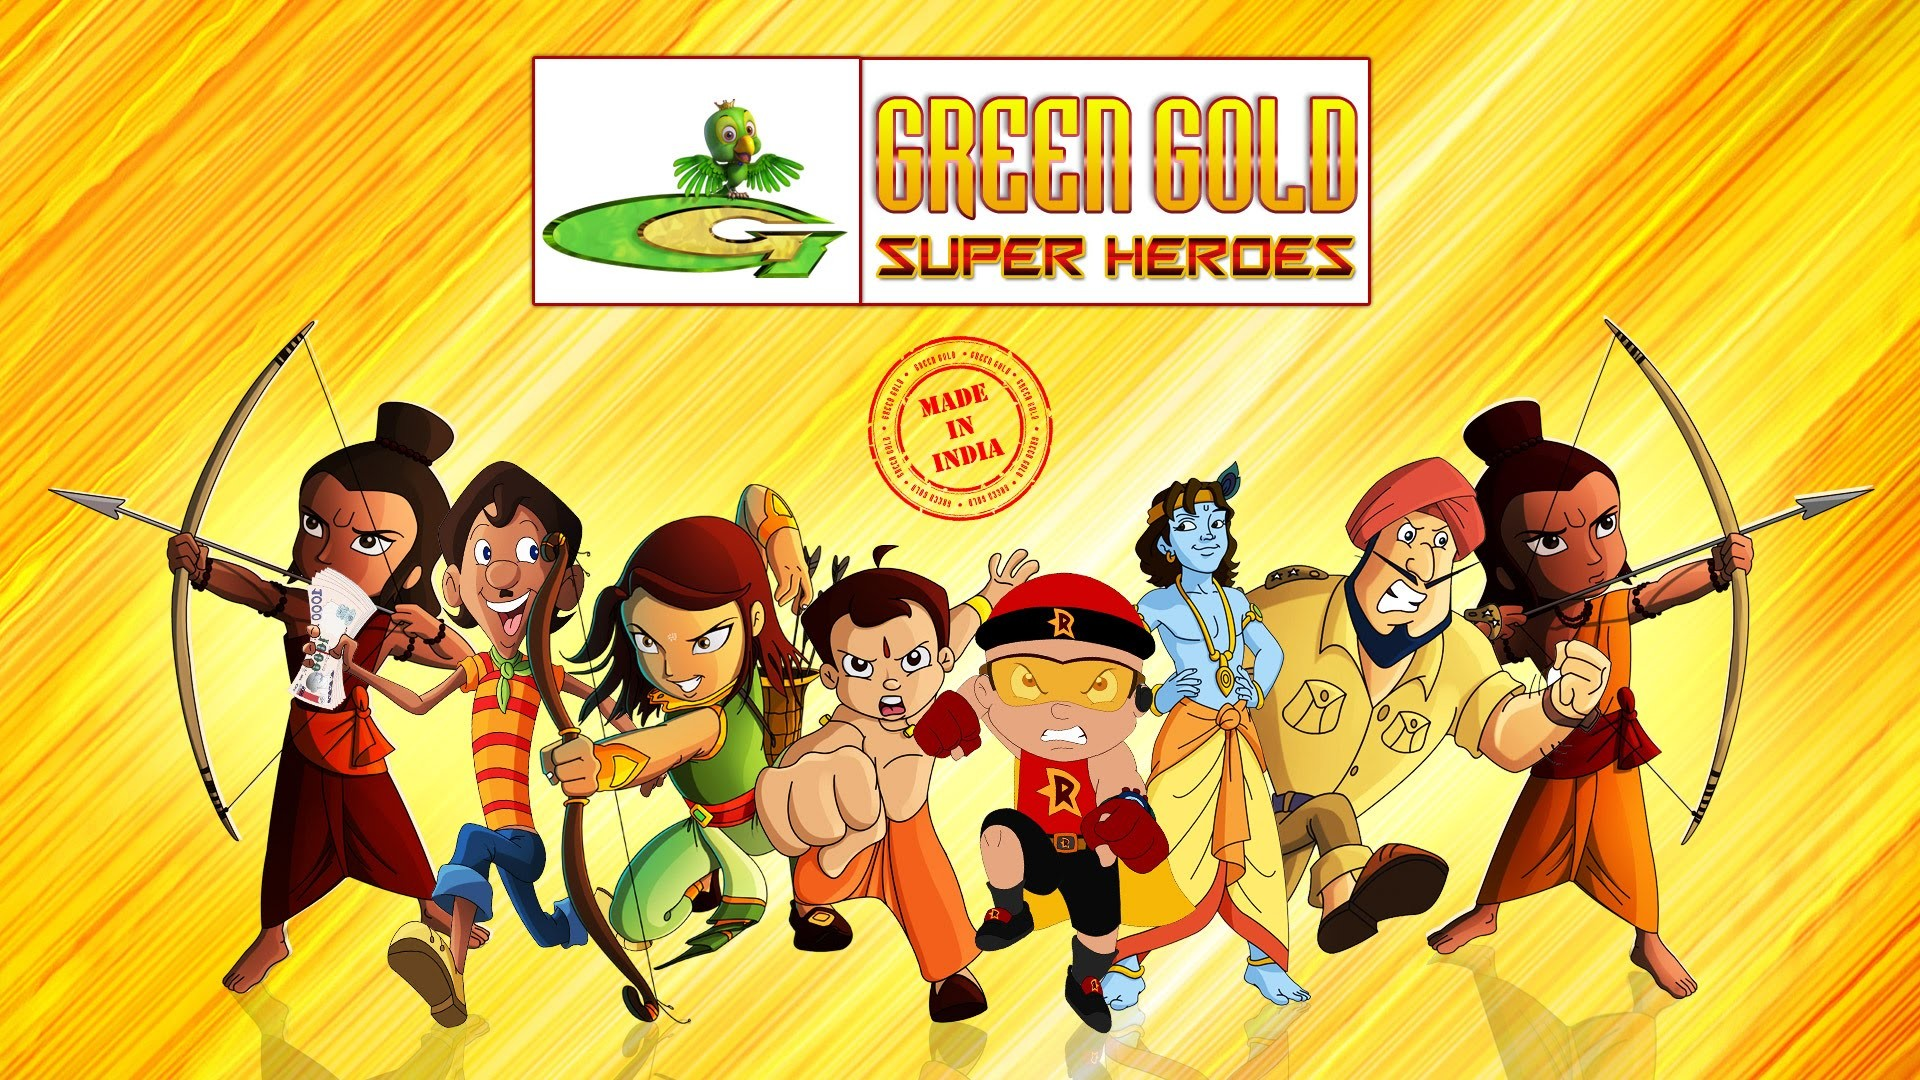 Chhota Bheem Wallpapers (77+ images)